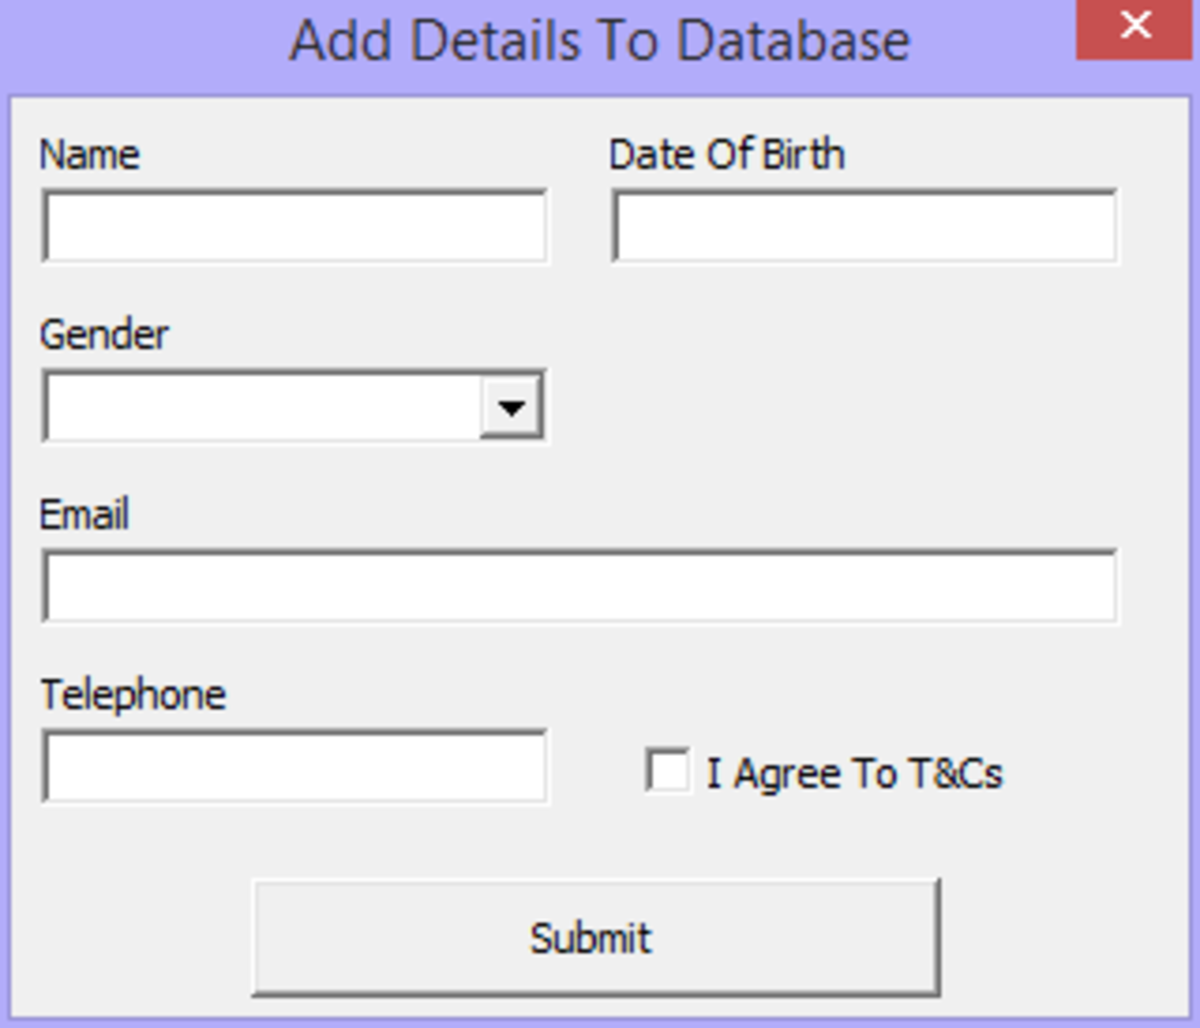 Excel VBA - Using A UserFrom To Populate A Database